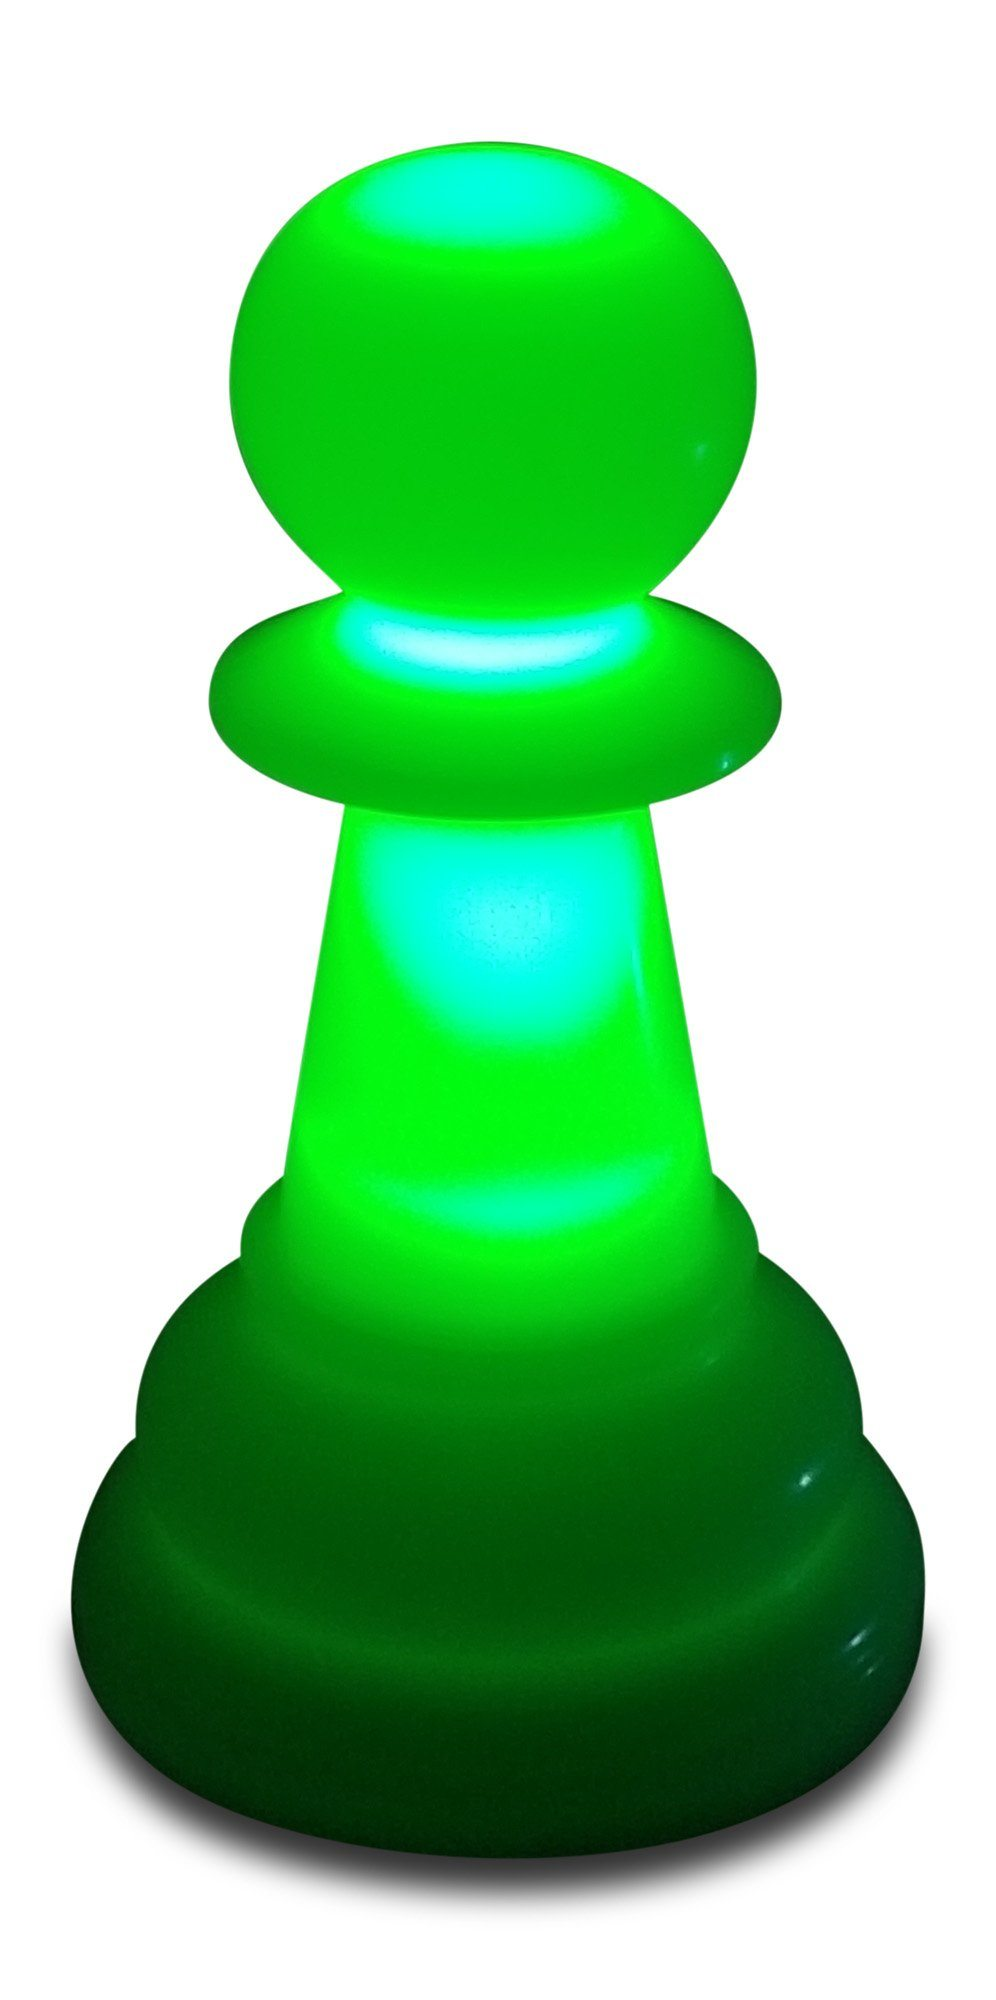 MegaChess 16 Inch Premium Plastic Pawn Light-Up Giant Chess Piece - Green | Default Title | GiantChessUSA